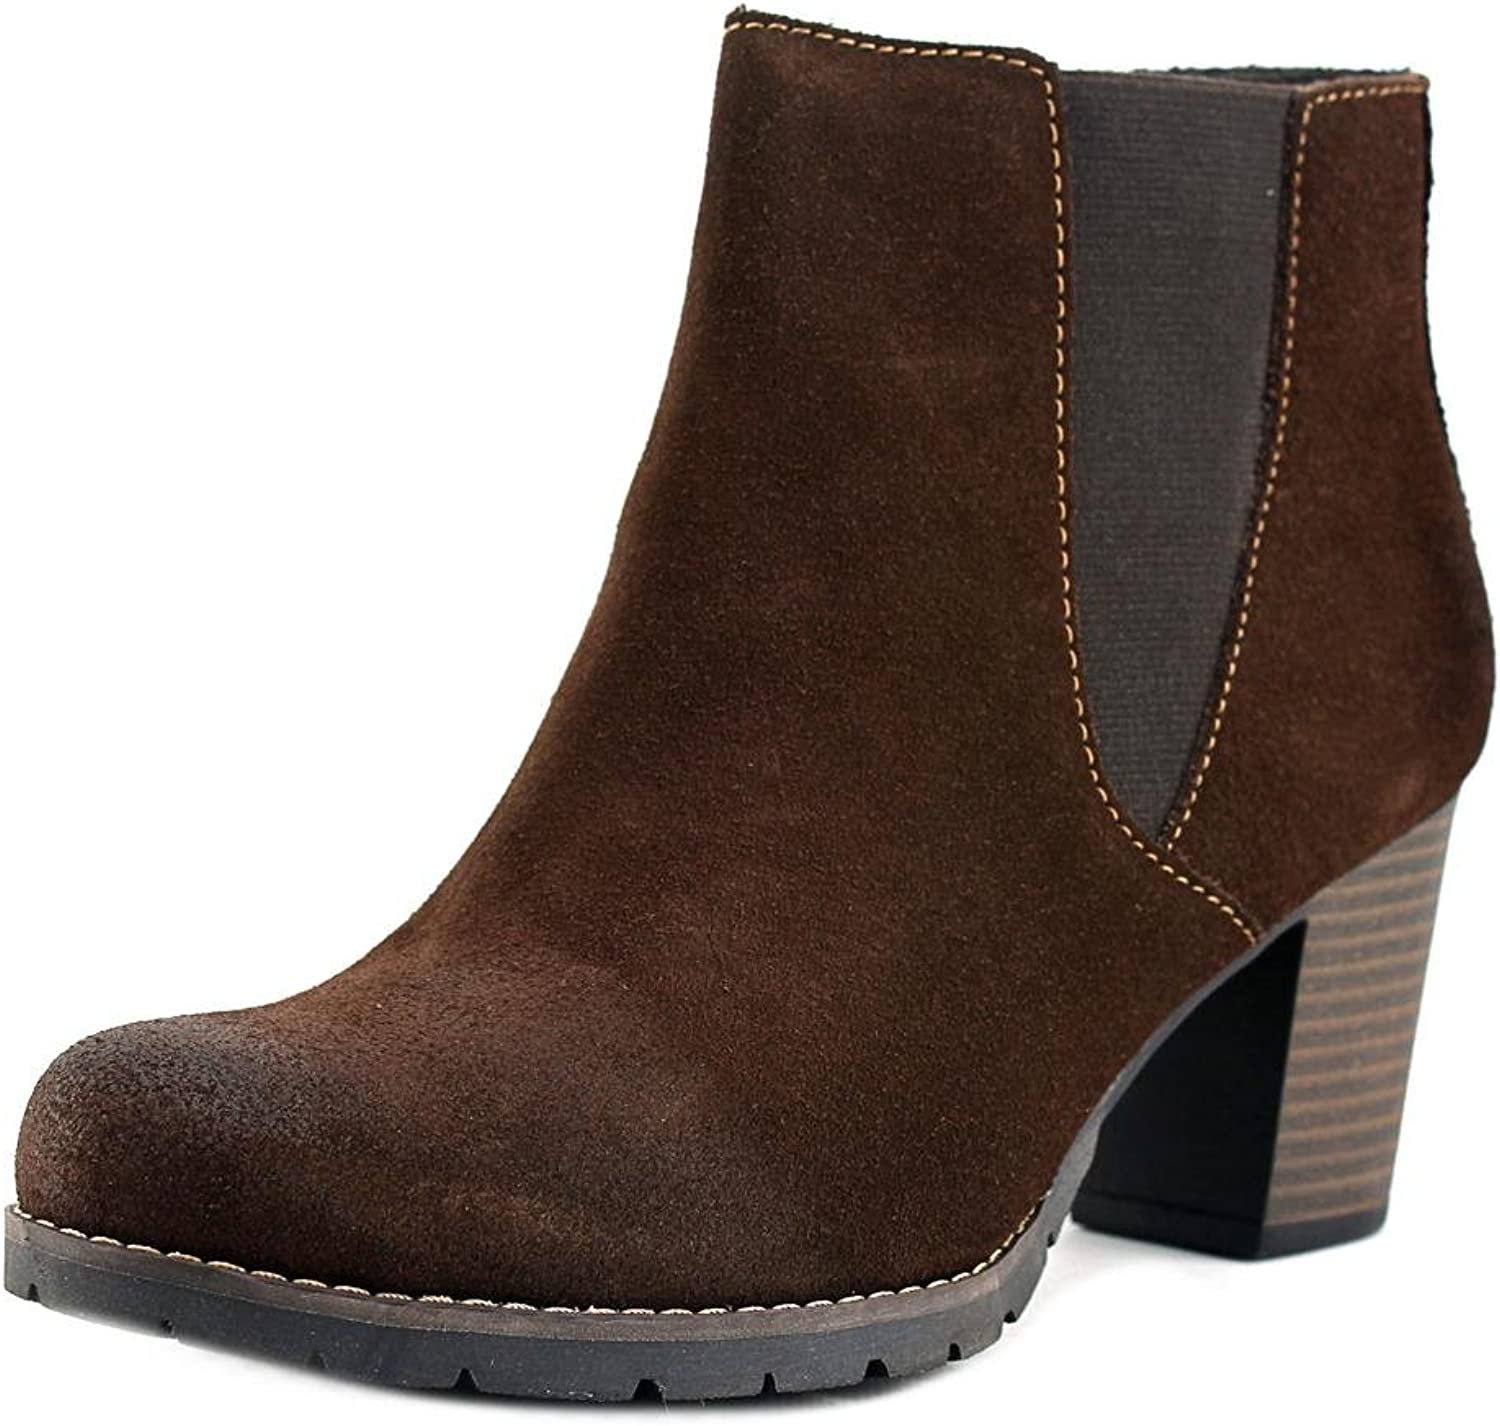 Clarks Pause Camelia Women's Ankle Boot